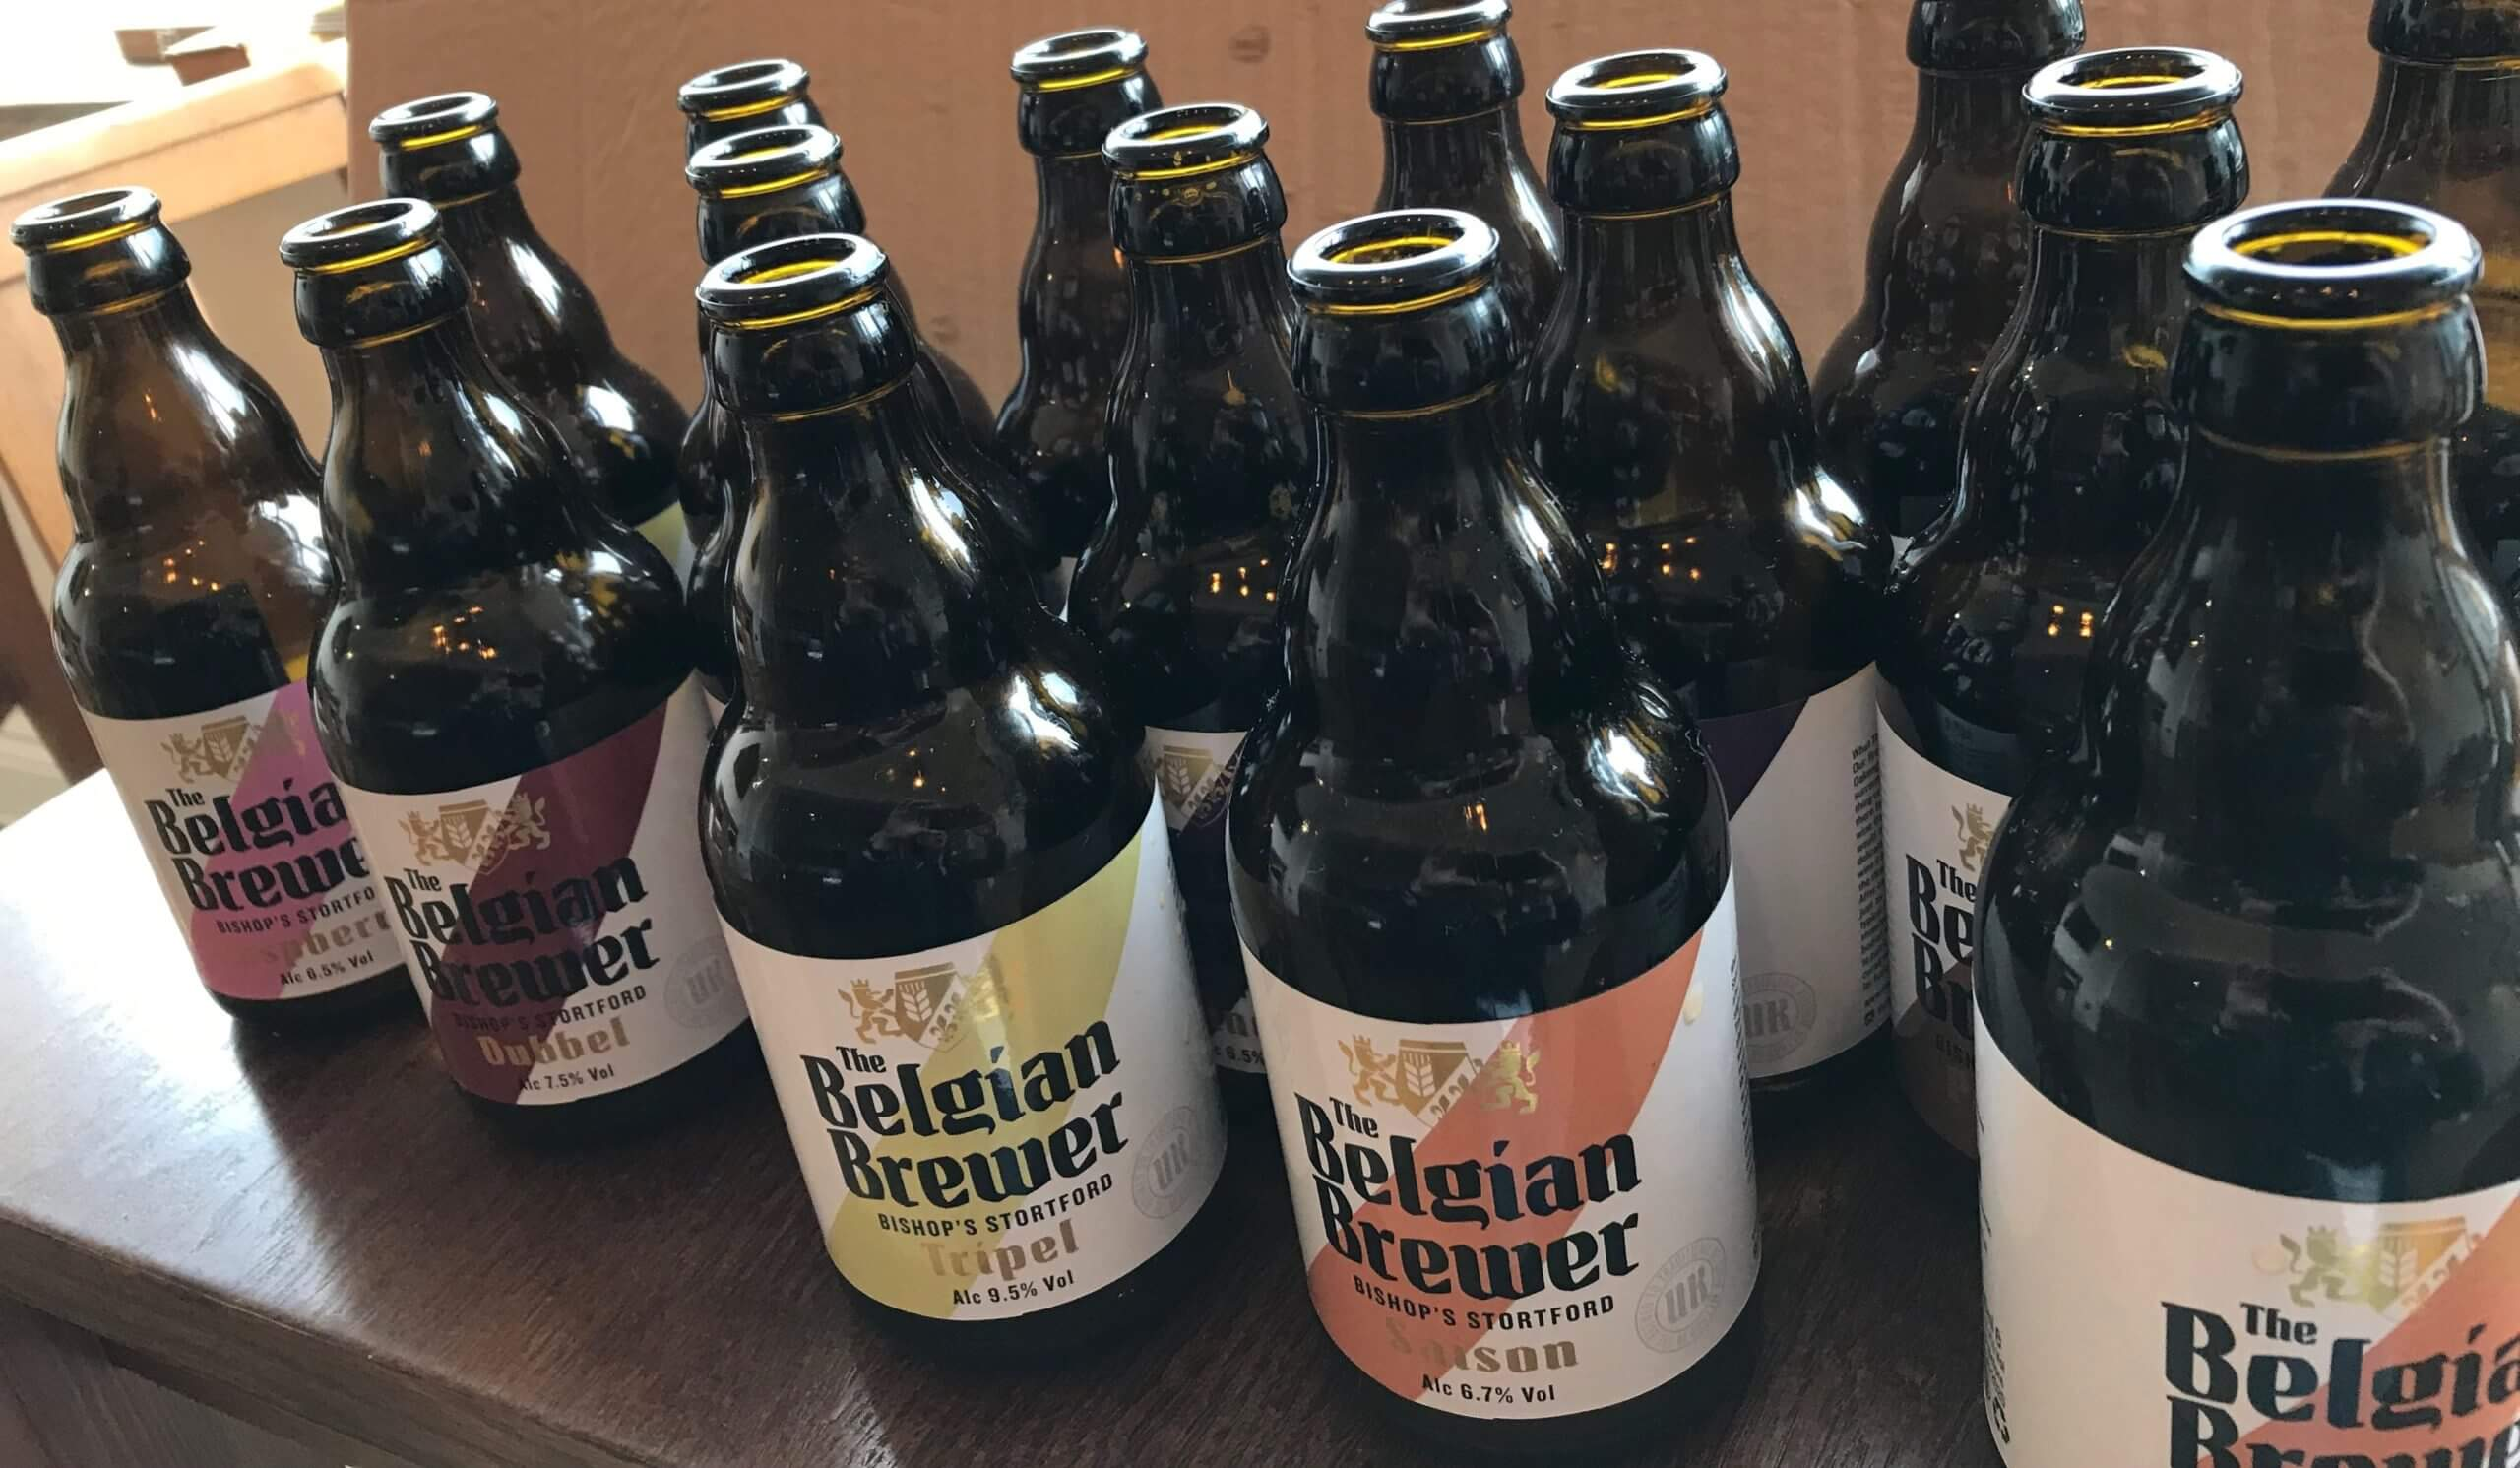 The Belgian Brewer tasting event